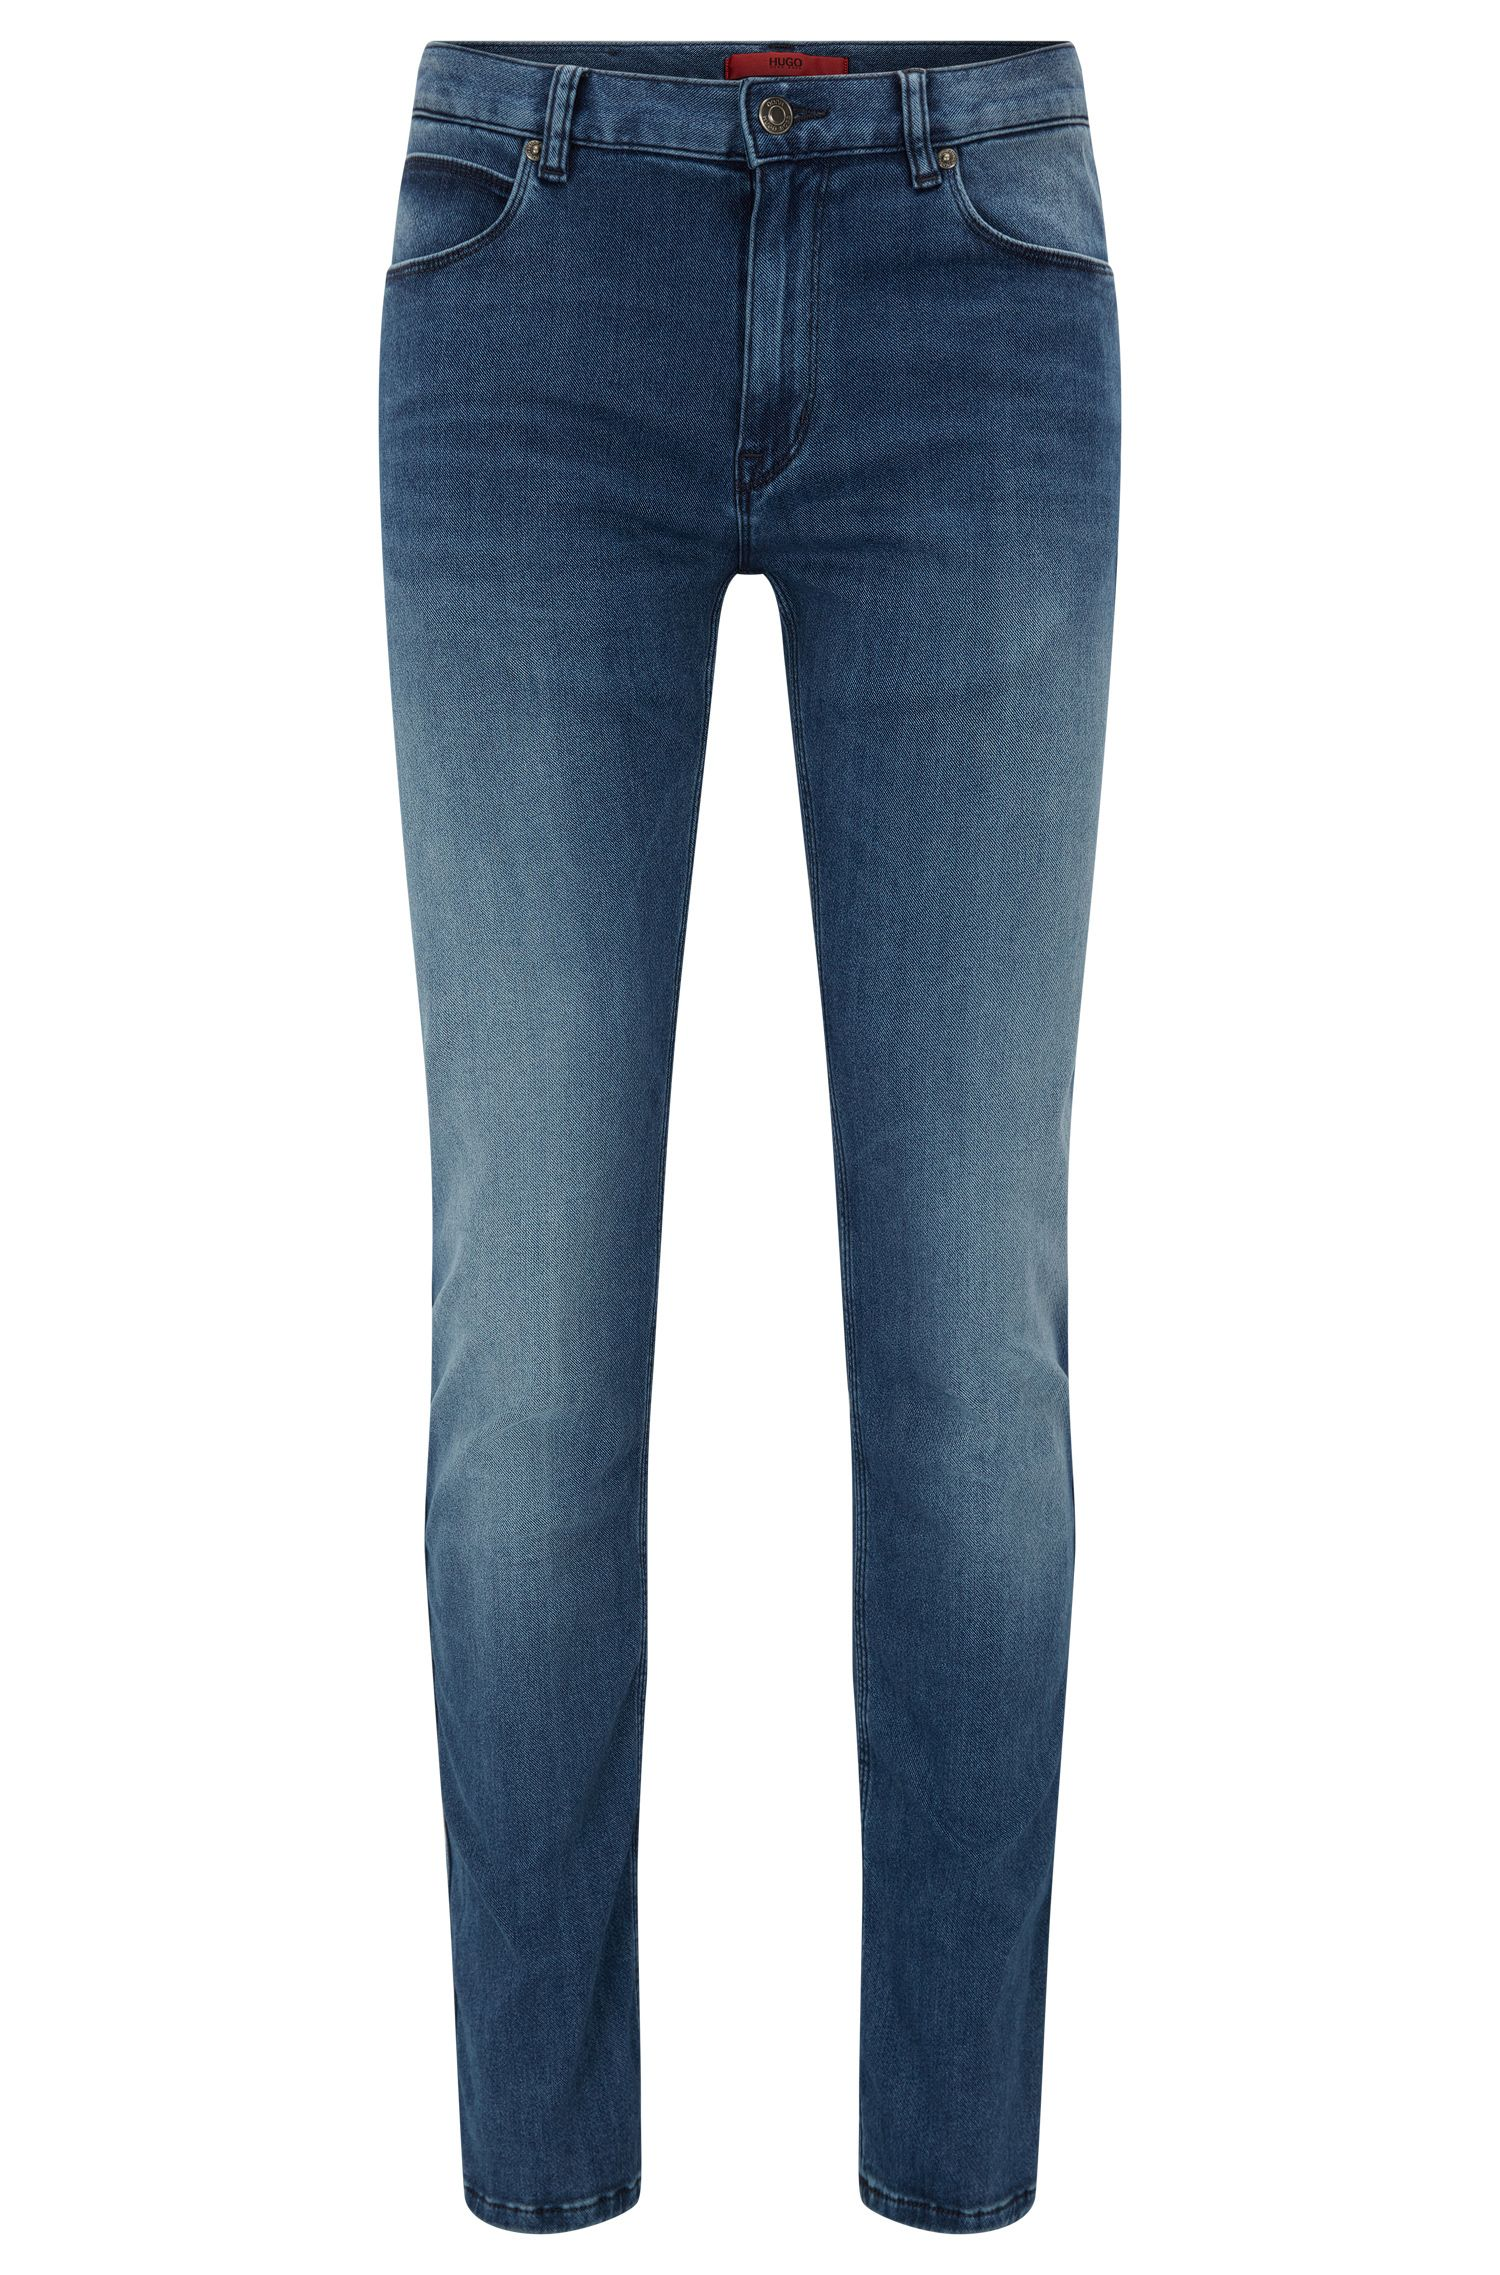 Slim-Fit Stone-washed Jeans aus elastischem Denim